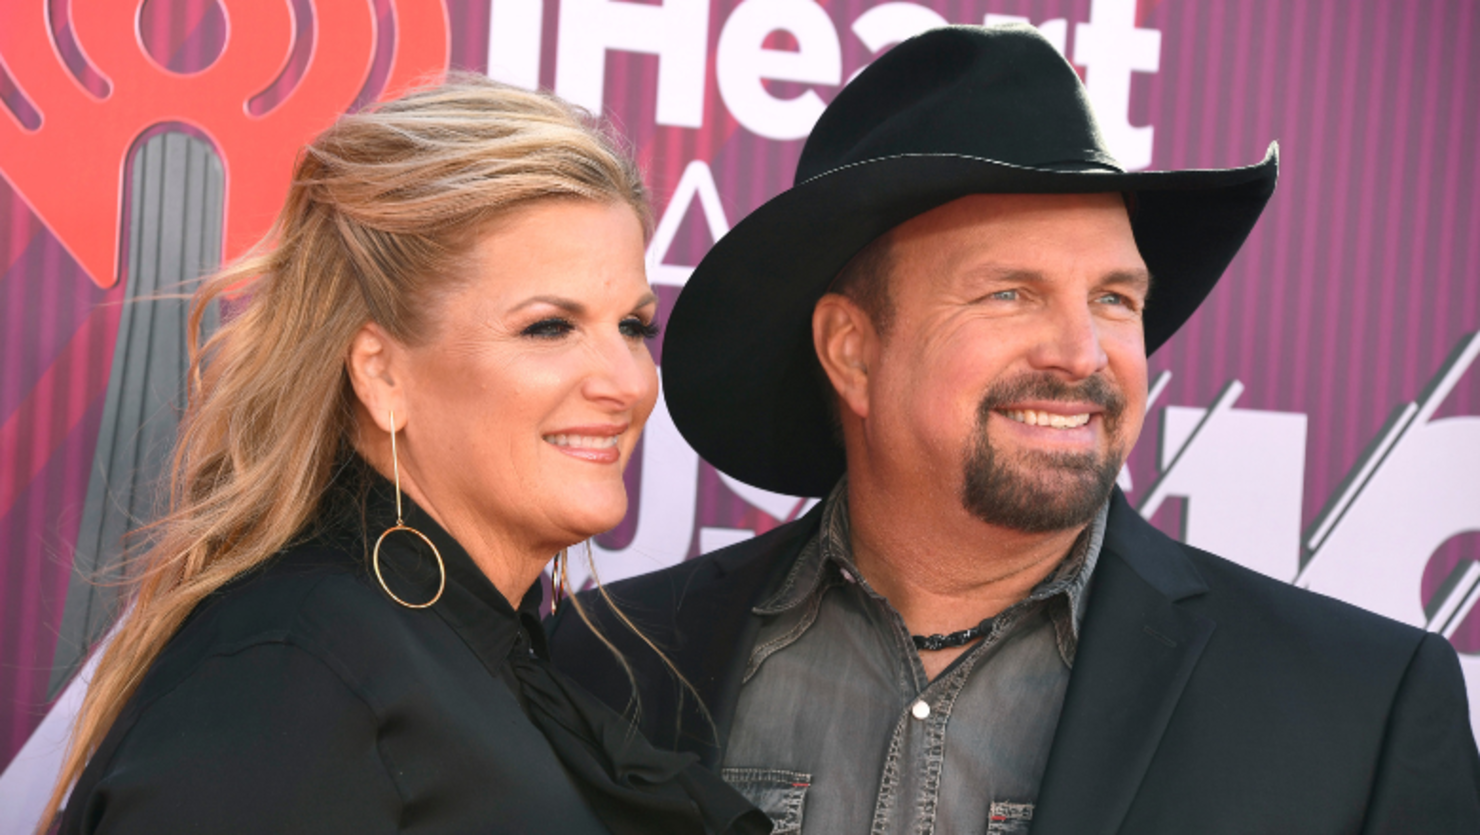 Garth Brooks, Trisha Yearwood Are Taking Requests For Their Holiday Special